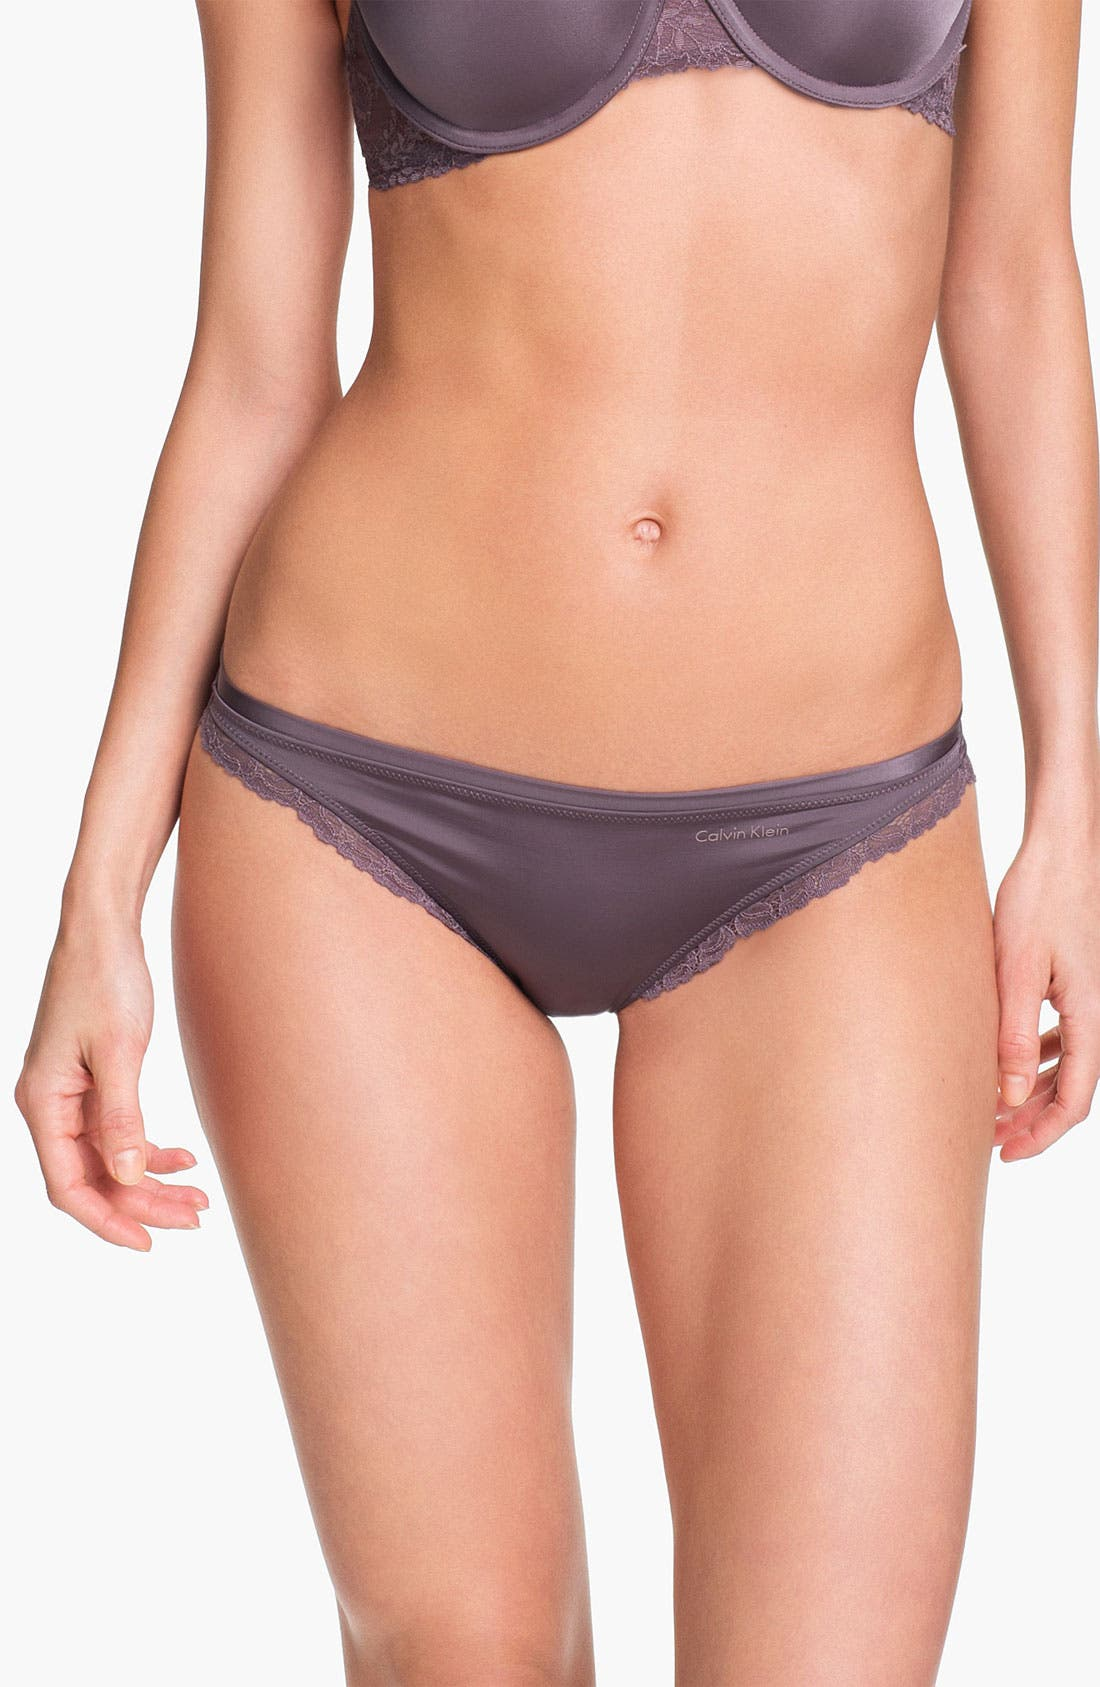 Alternate Image 1 Selected - Calvin Klein 'Seductive Comfort' Lace Trim Bikini